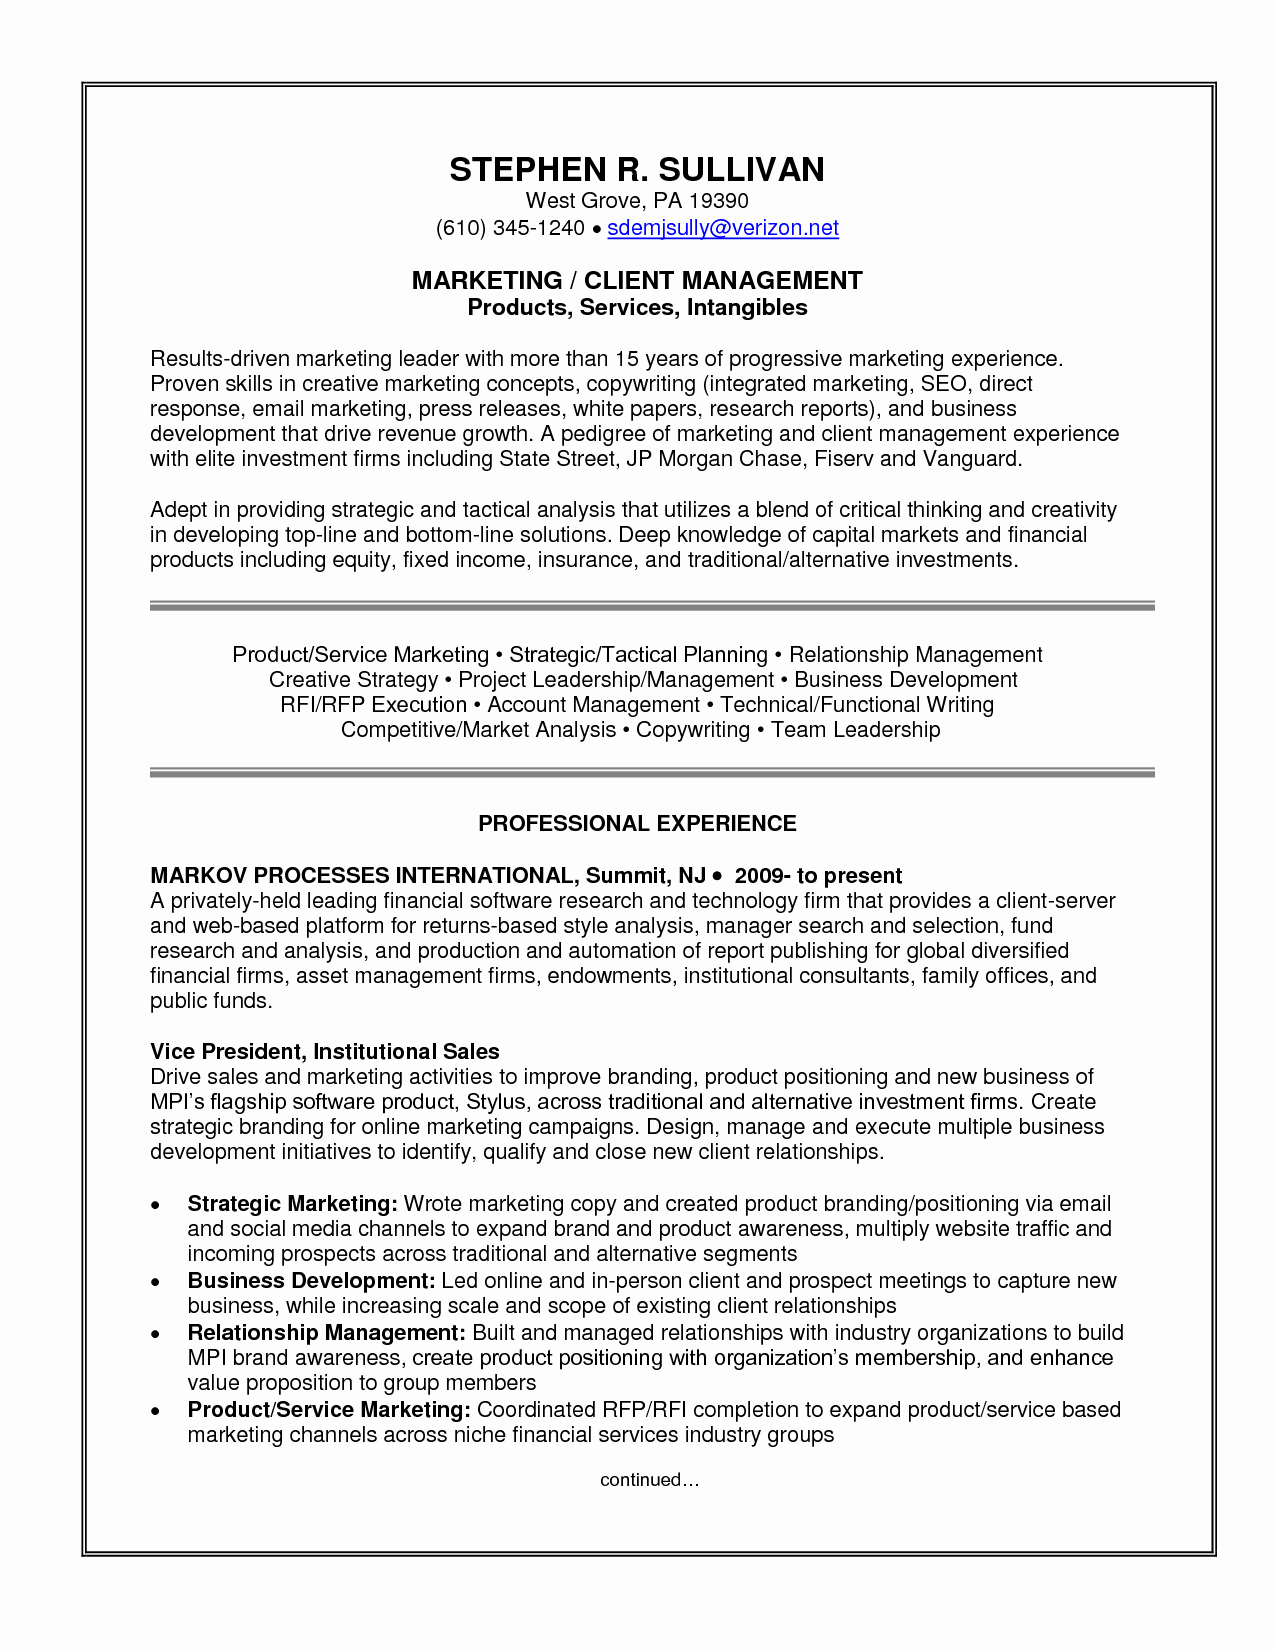 Accredited Investor Verification Letter Template - Professional Skills to Put A Resume Ideas